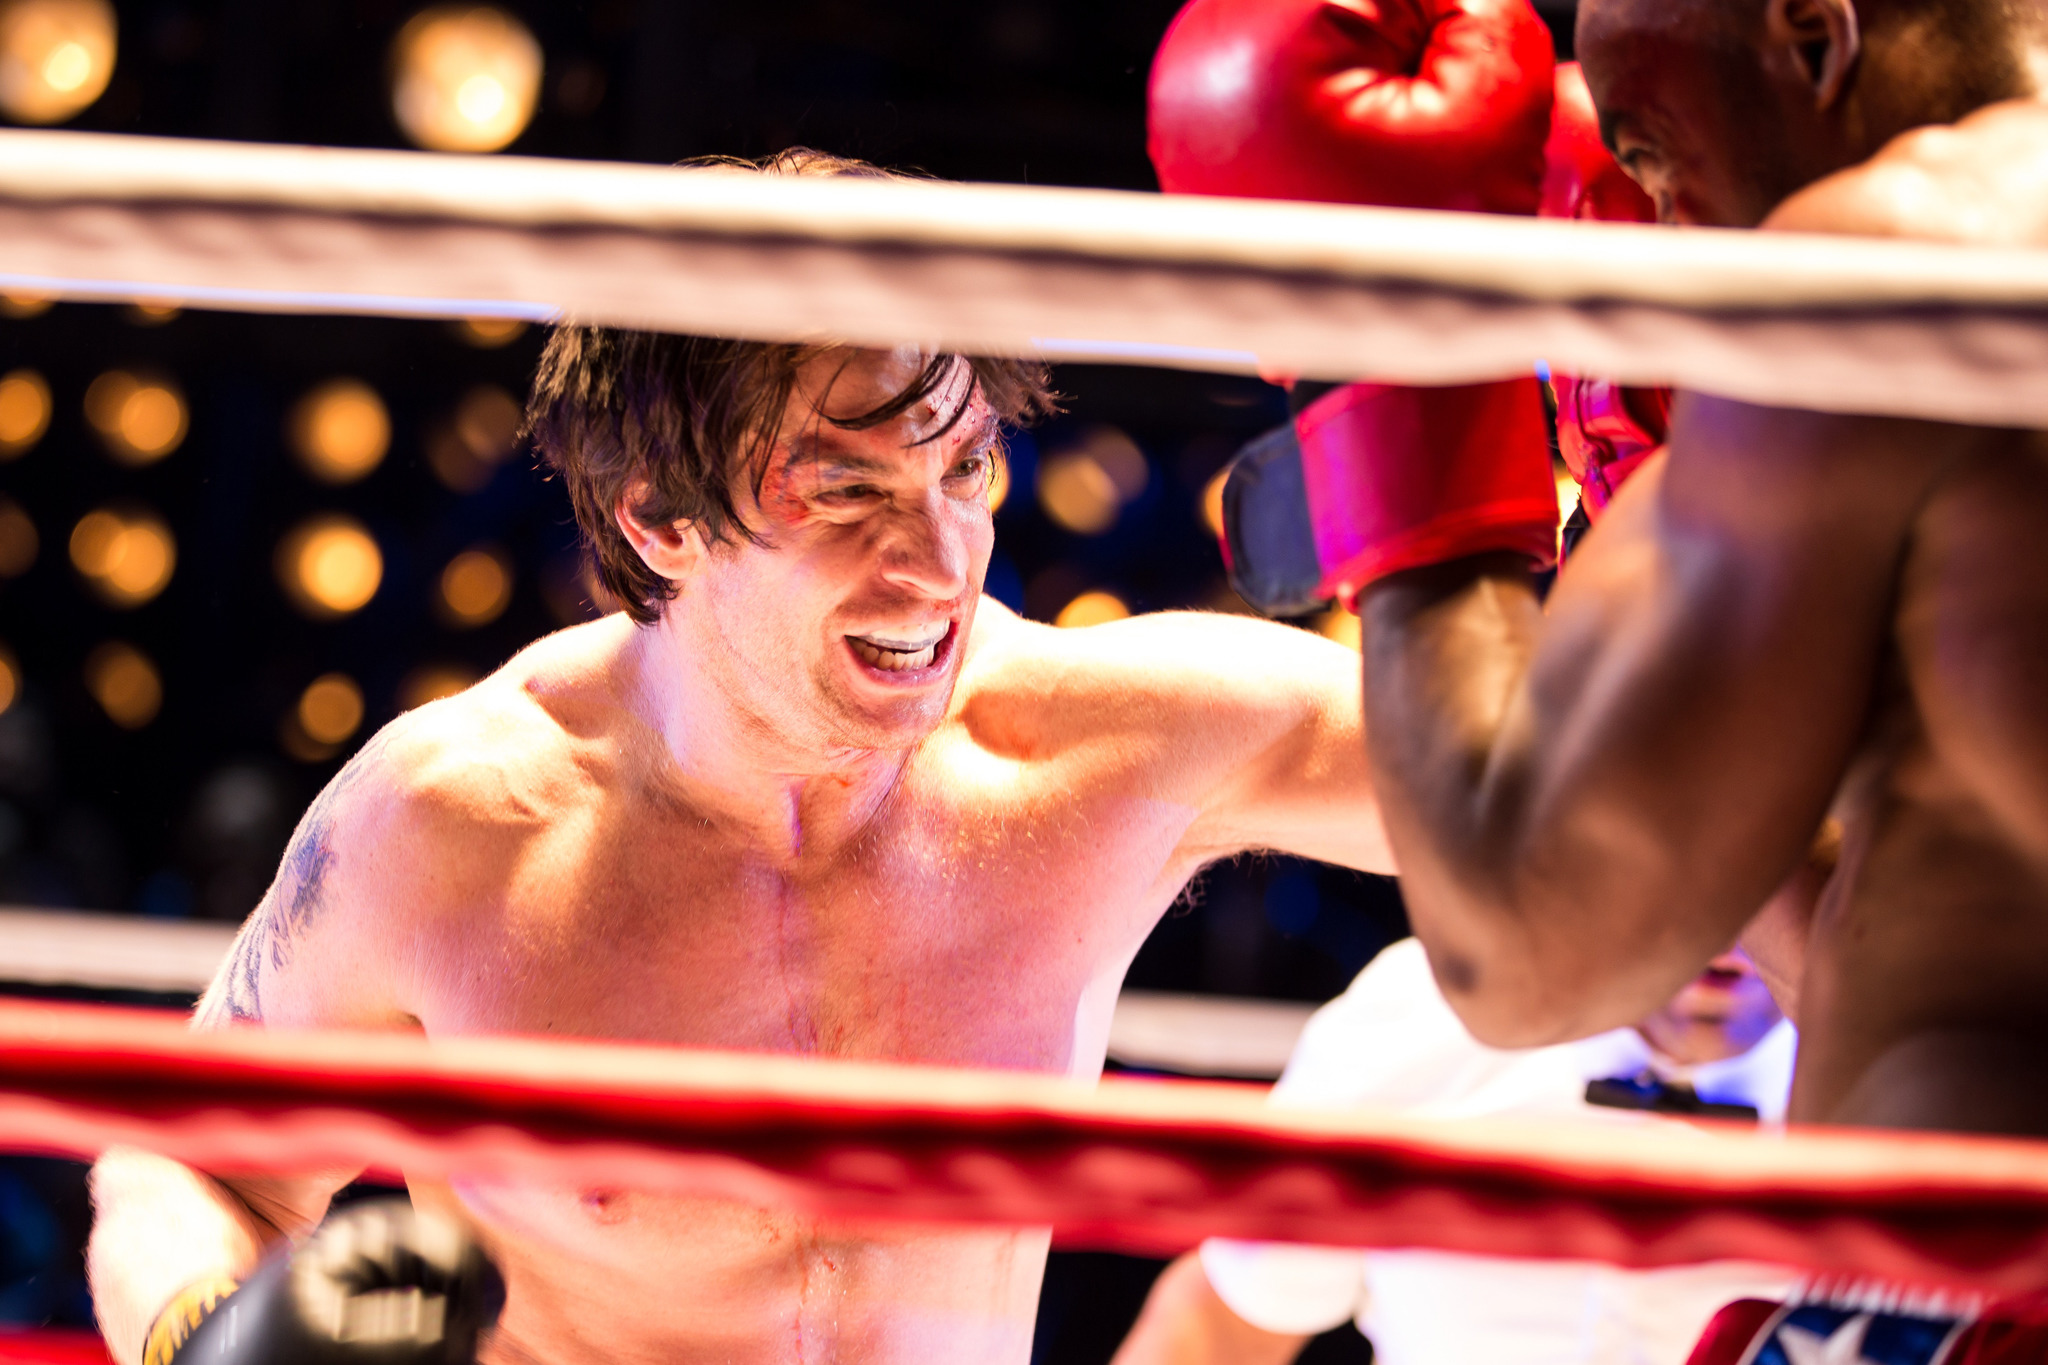 Rocky is down for the count—what Broadway shows may close next?